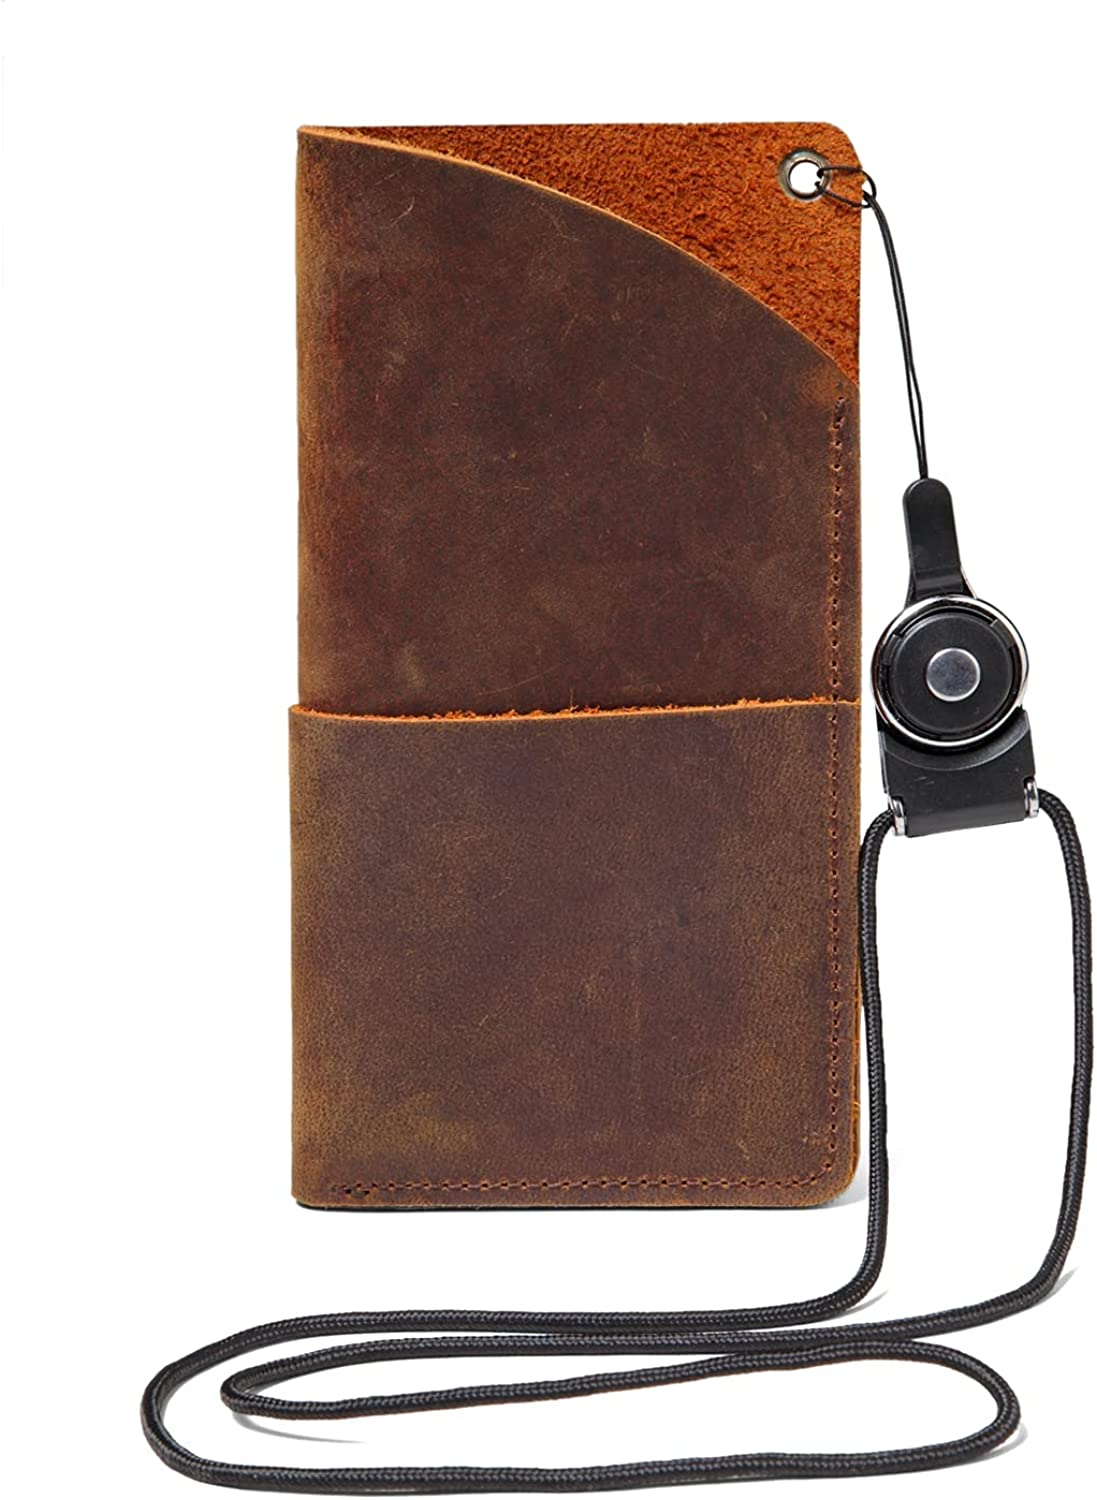 WN2O Genuine Leather Sunglass Case with Pocket Soft Leather Eyeglass Case Pouch/Holder